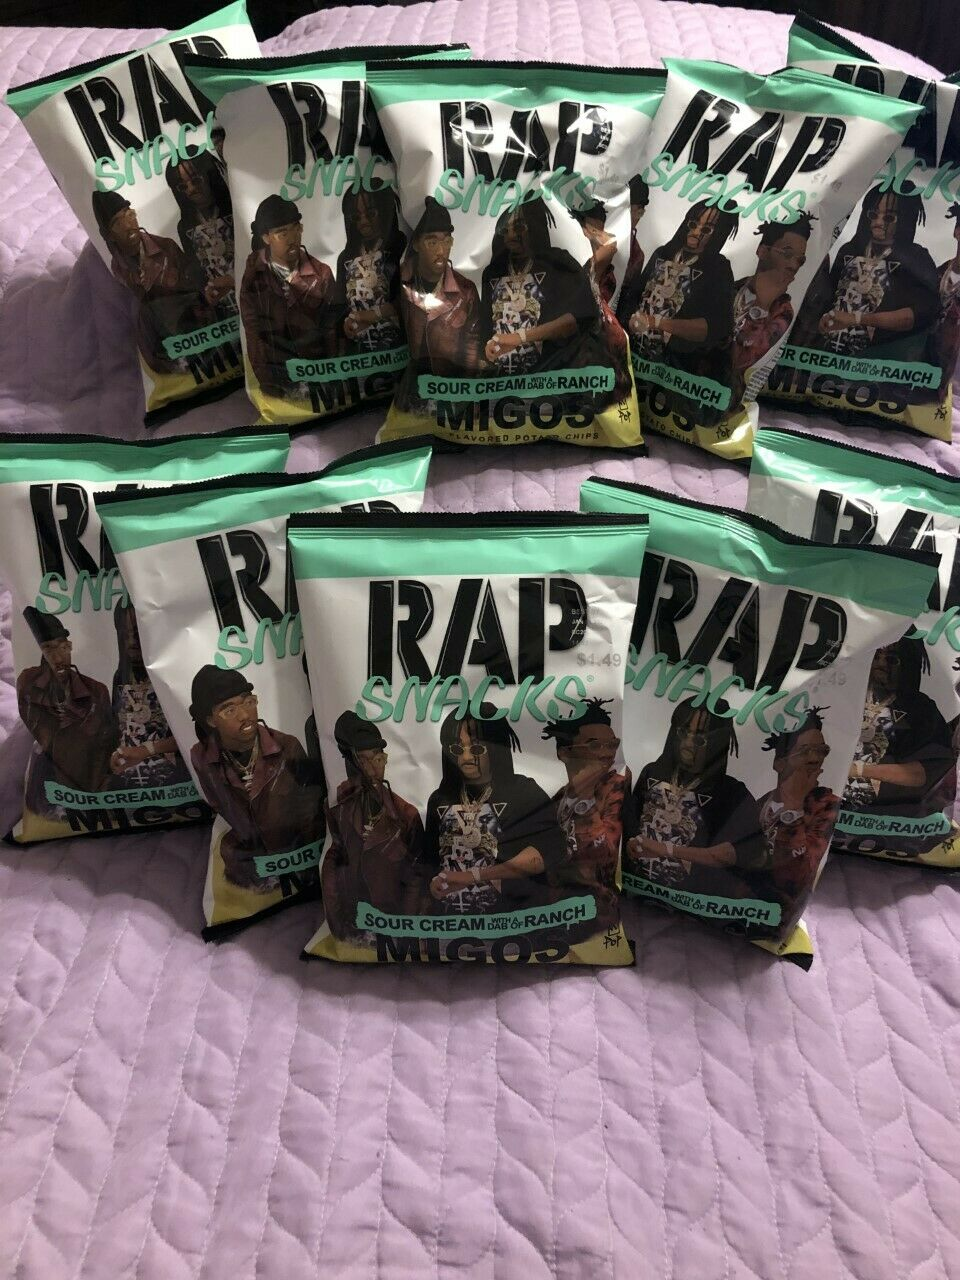 Rap Snacks Migos Sour Cream With A Dab Of Ranch 10 Count For Sale Online